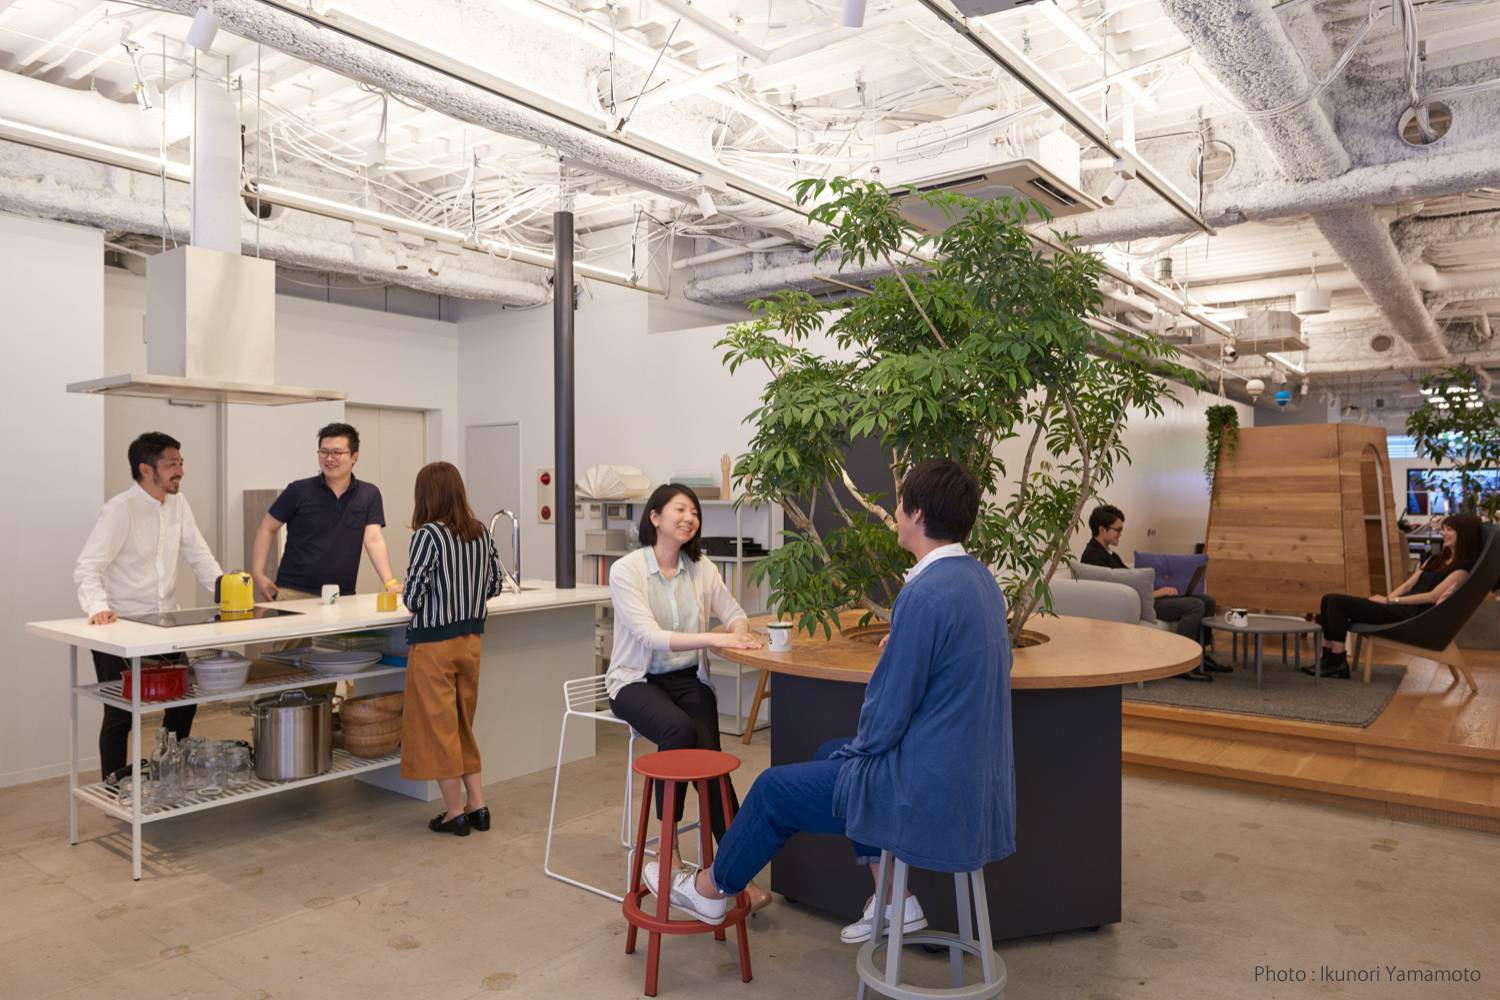 Tokyo-based workplace design and project management company DE-SIGN INC. has created offices for several global companies. | COURTESY OF DE-SIGN INC.